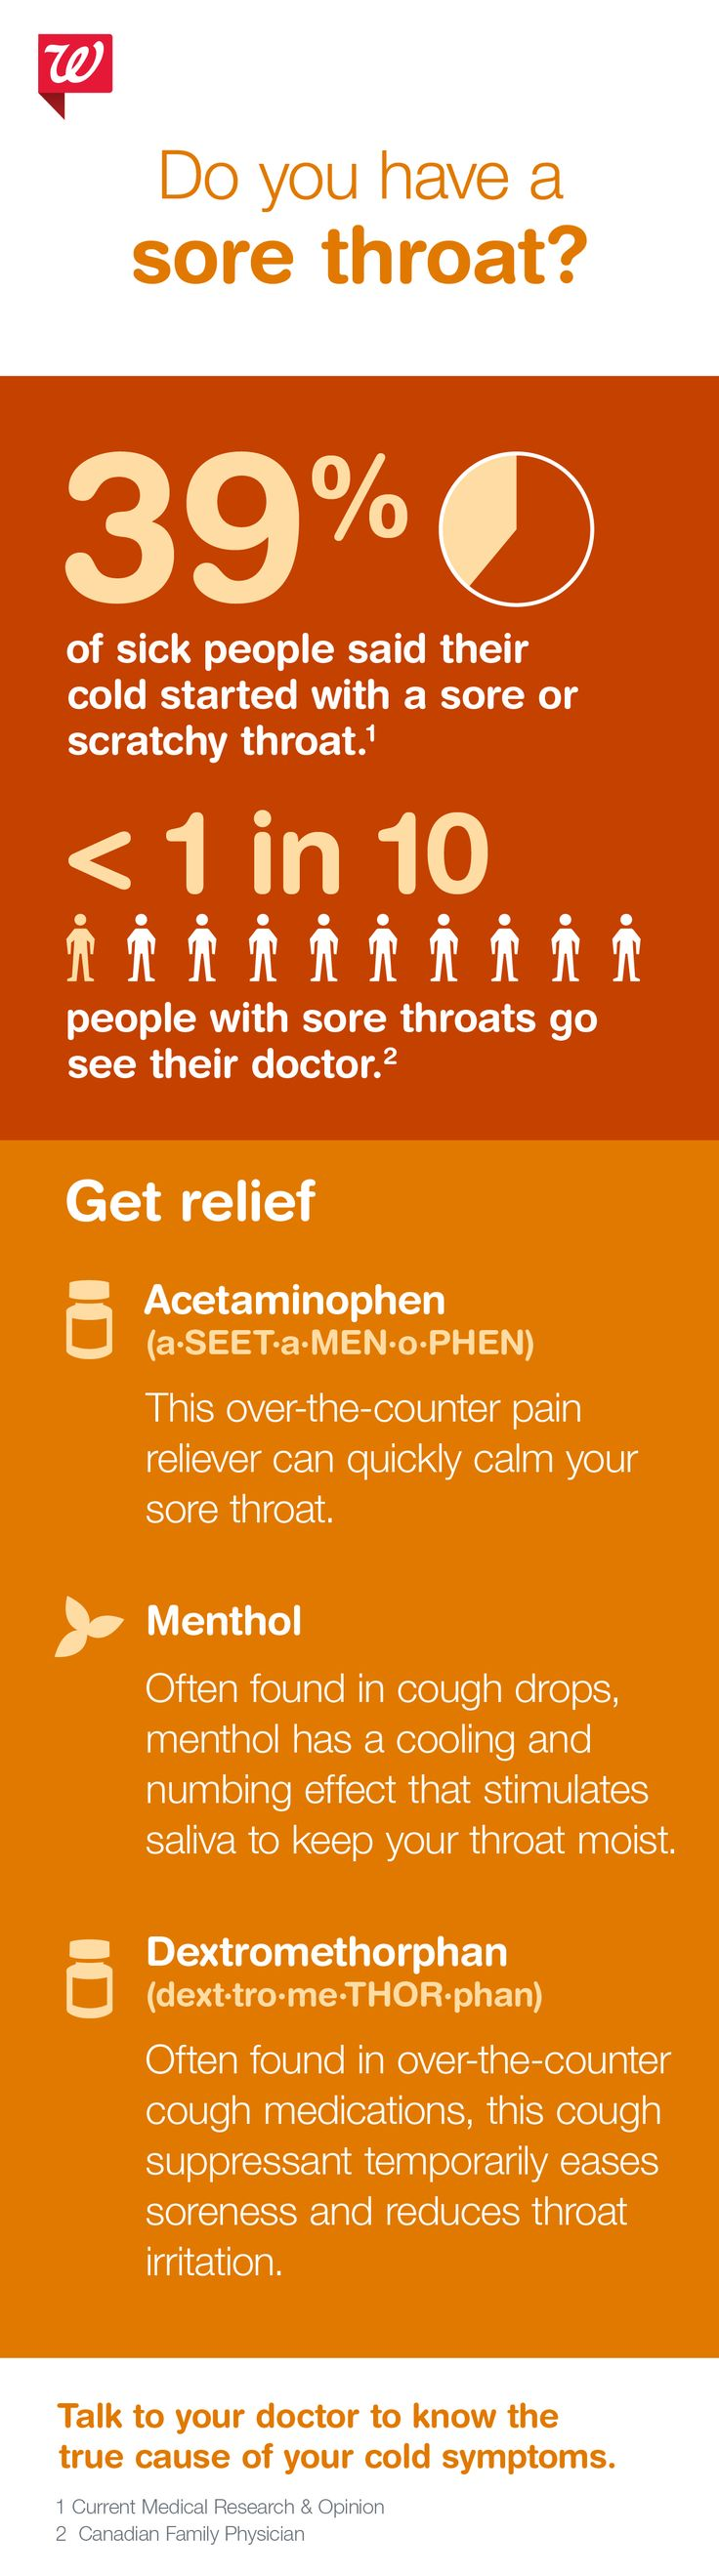 Many colds begin with a sore throat. If you're experiencing symptoms, find relief fast.